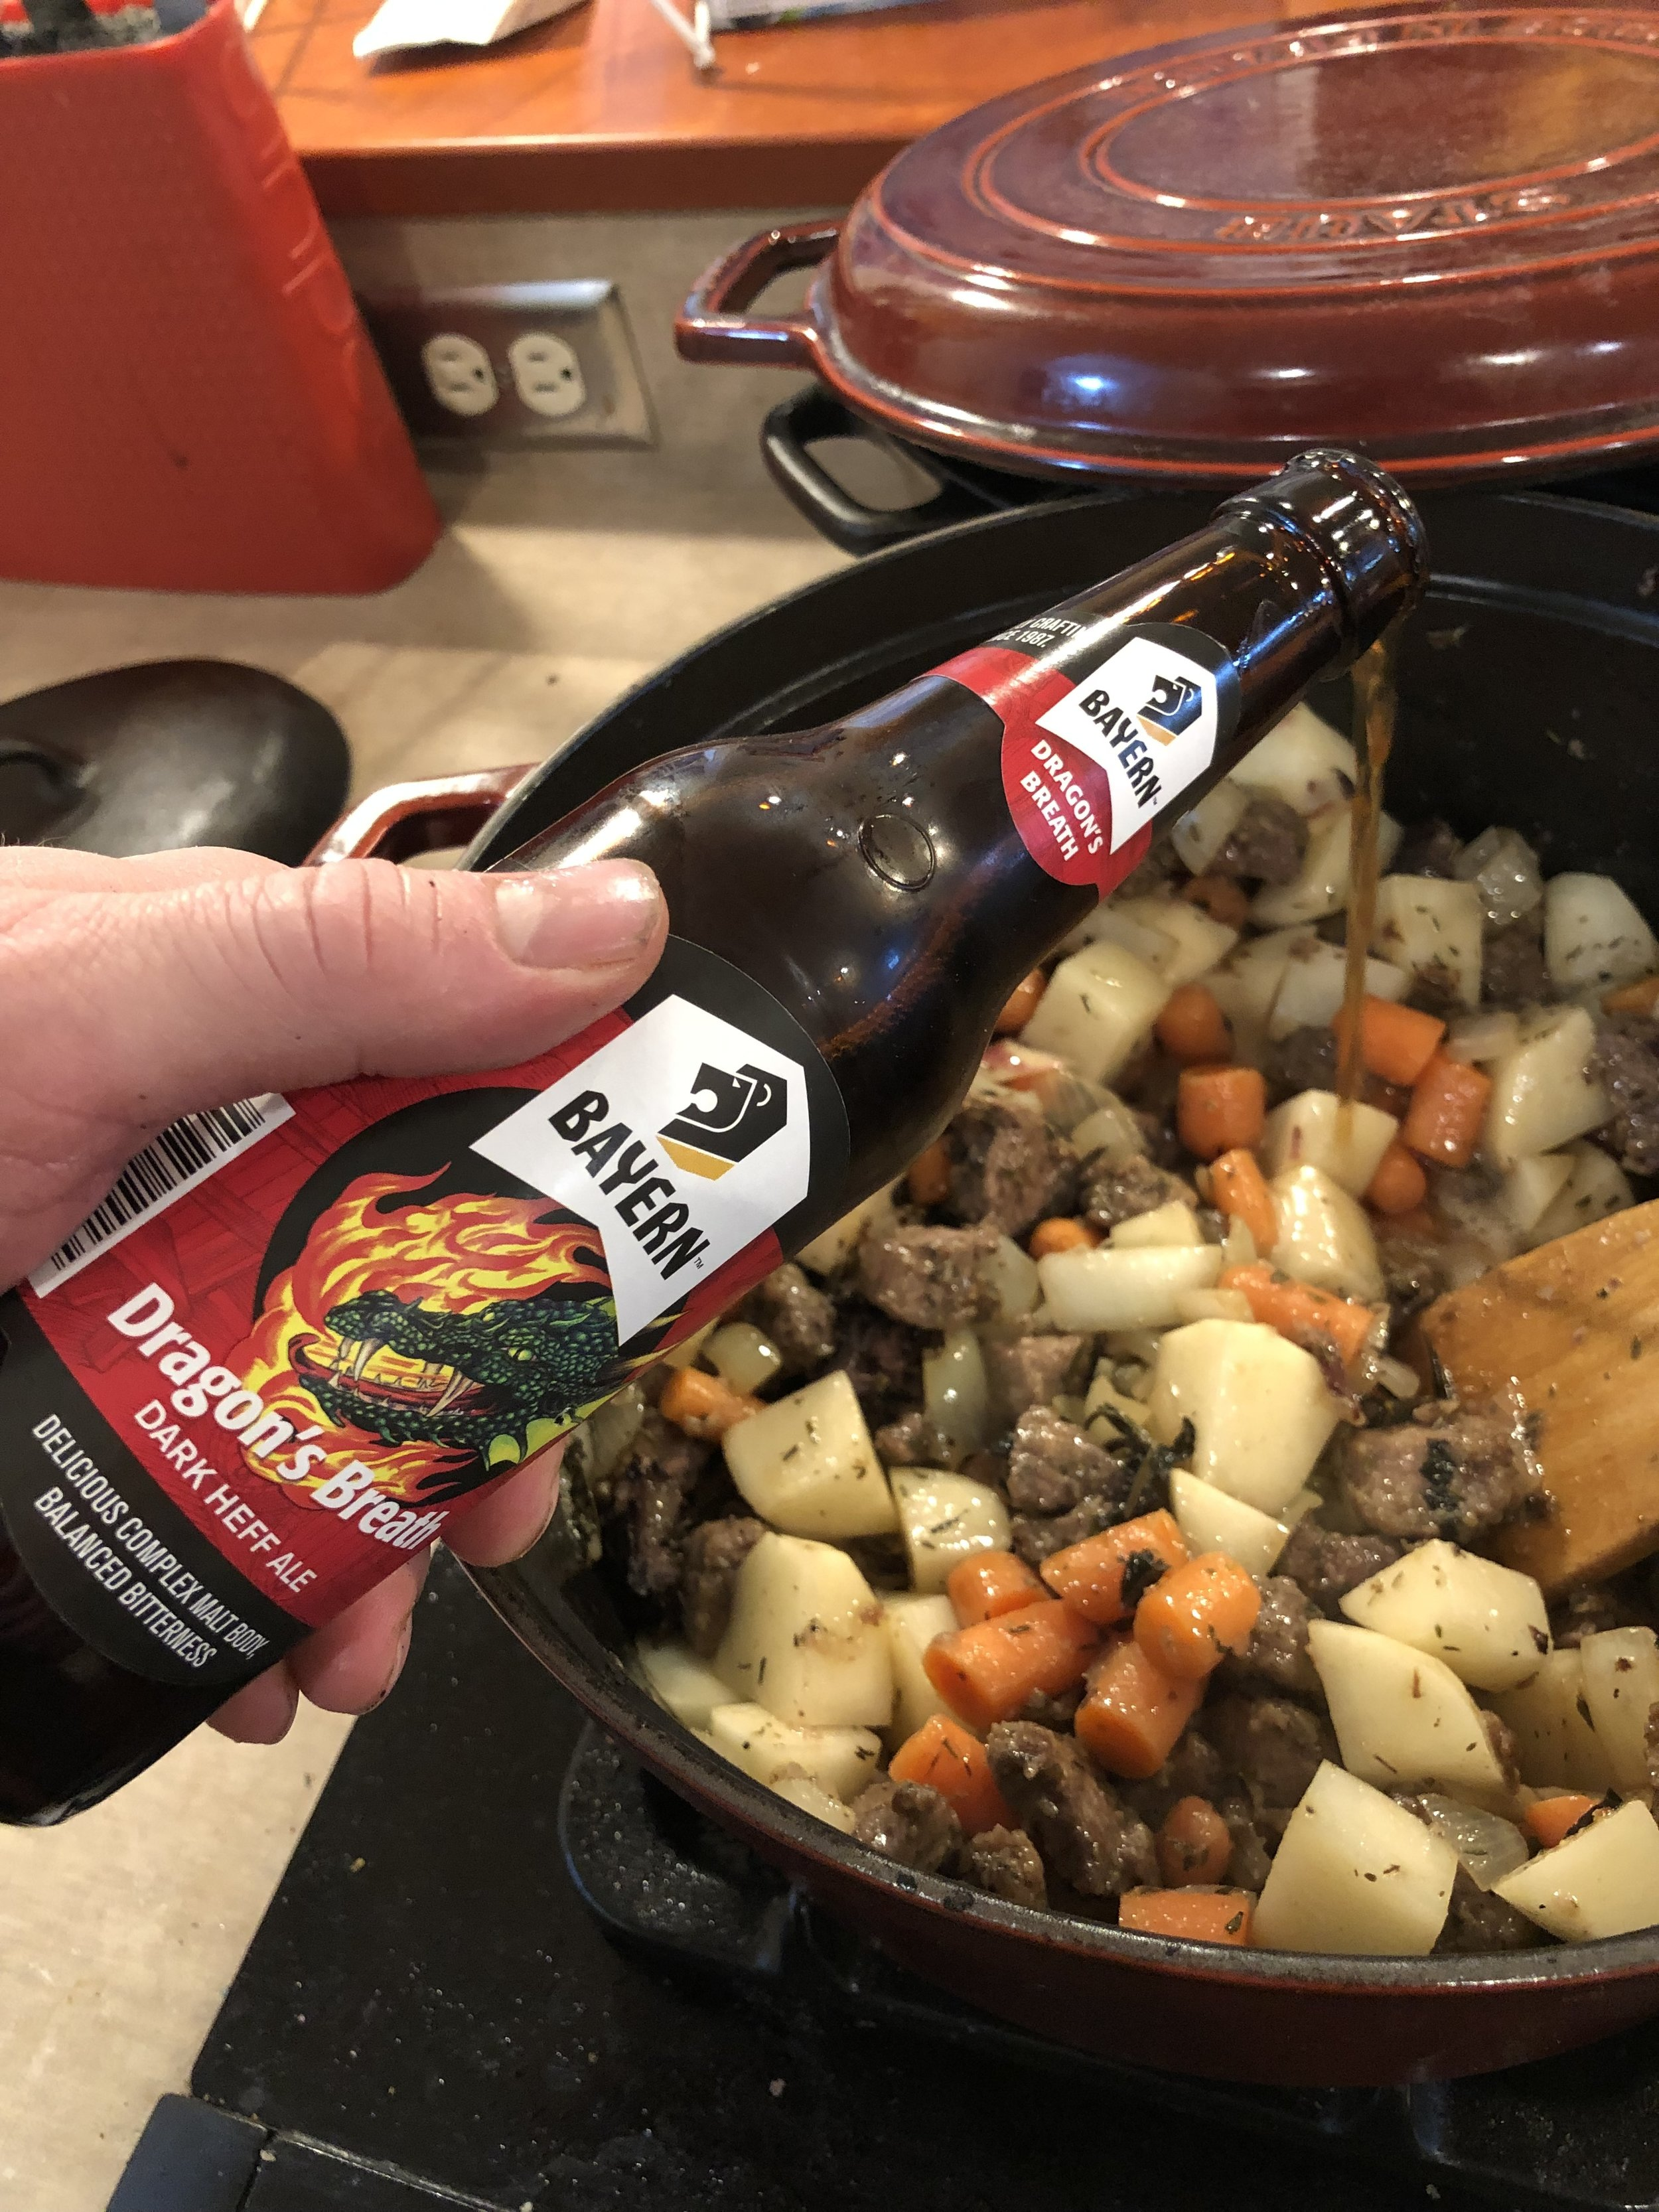 Dragon's Breath is perfect for braising as it gives a smooth and rich flavor without the bitterness from other dark beers.